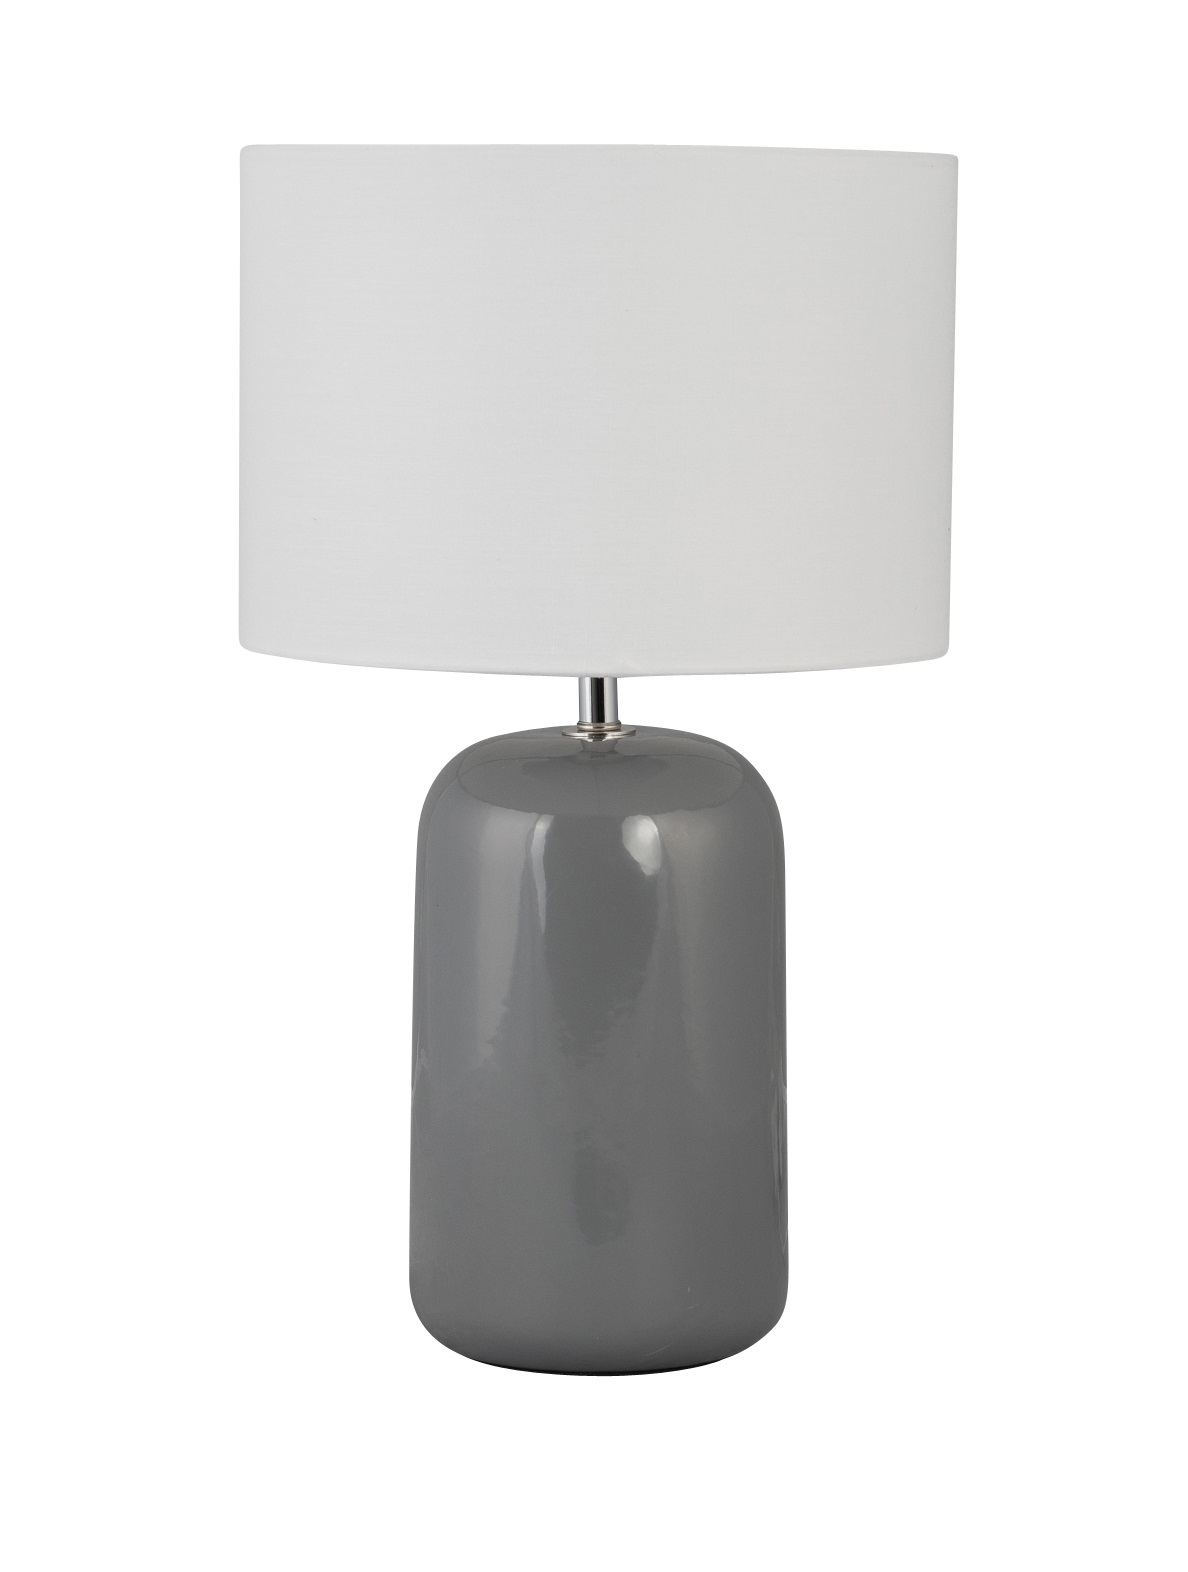 Table Lamp Grey Ceramic Bedside Light Deco Bed Retro With